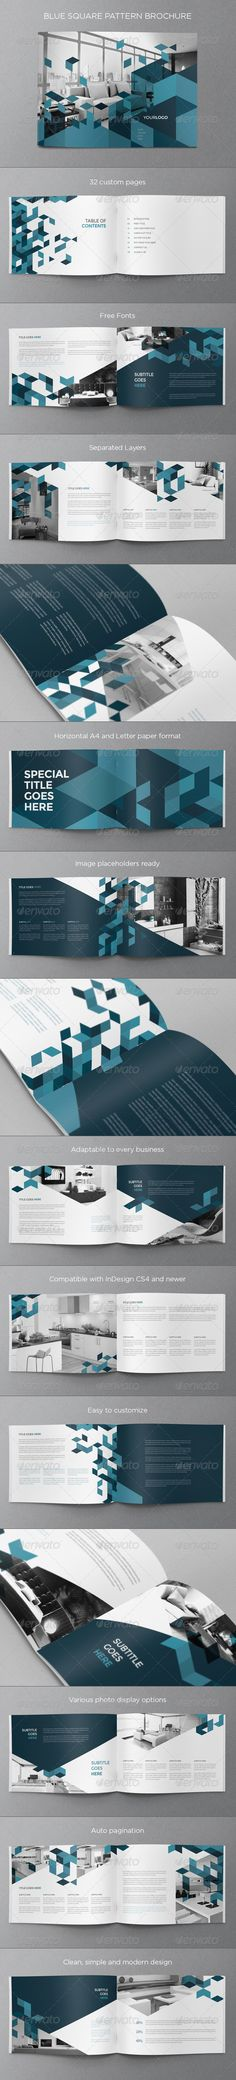 Blue Square Pattern Brochure - Brochures Print Templates